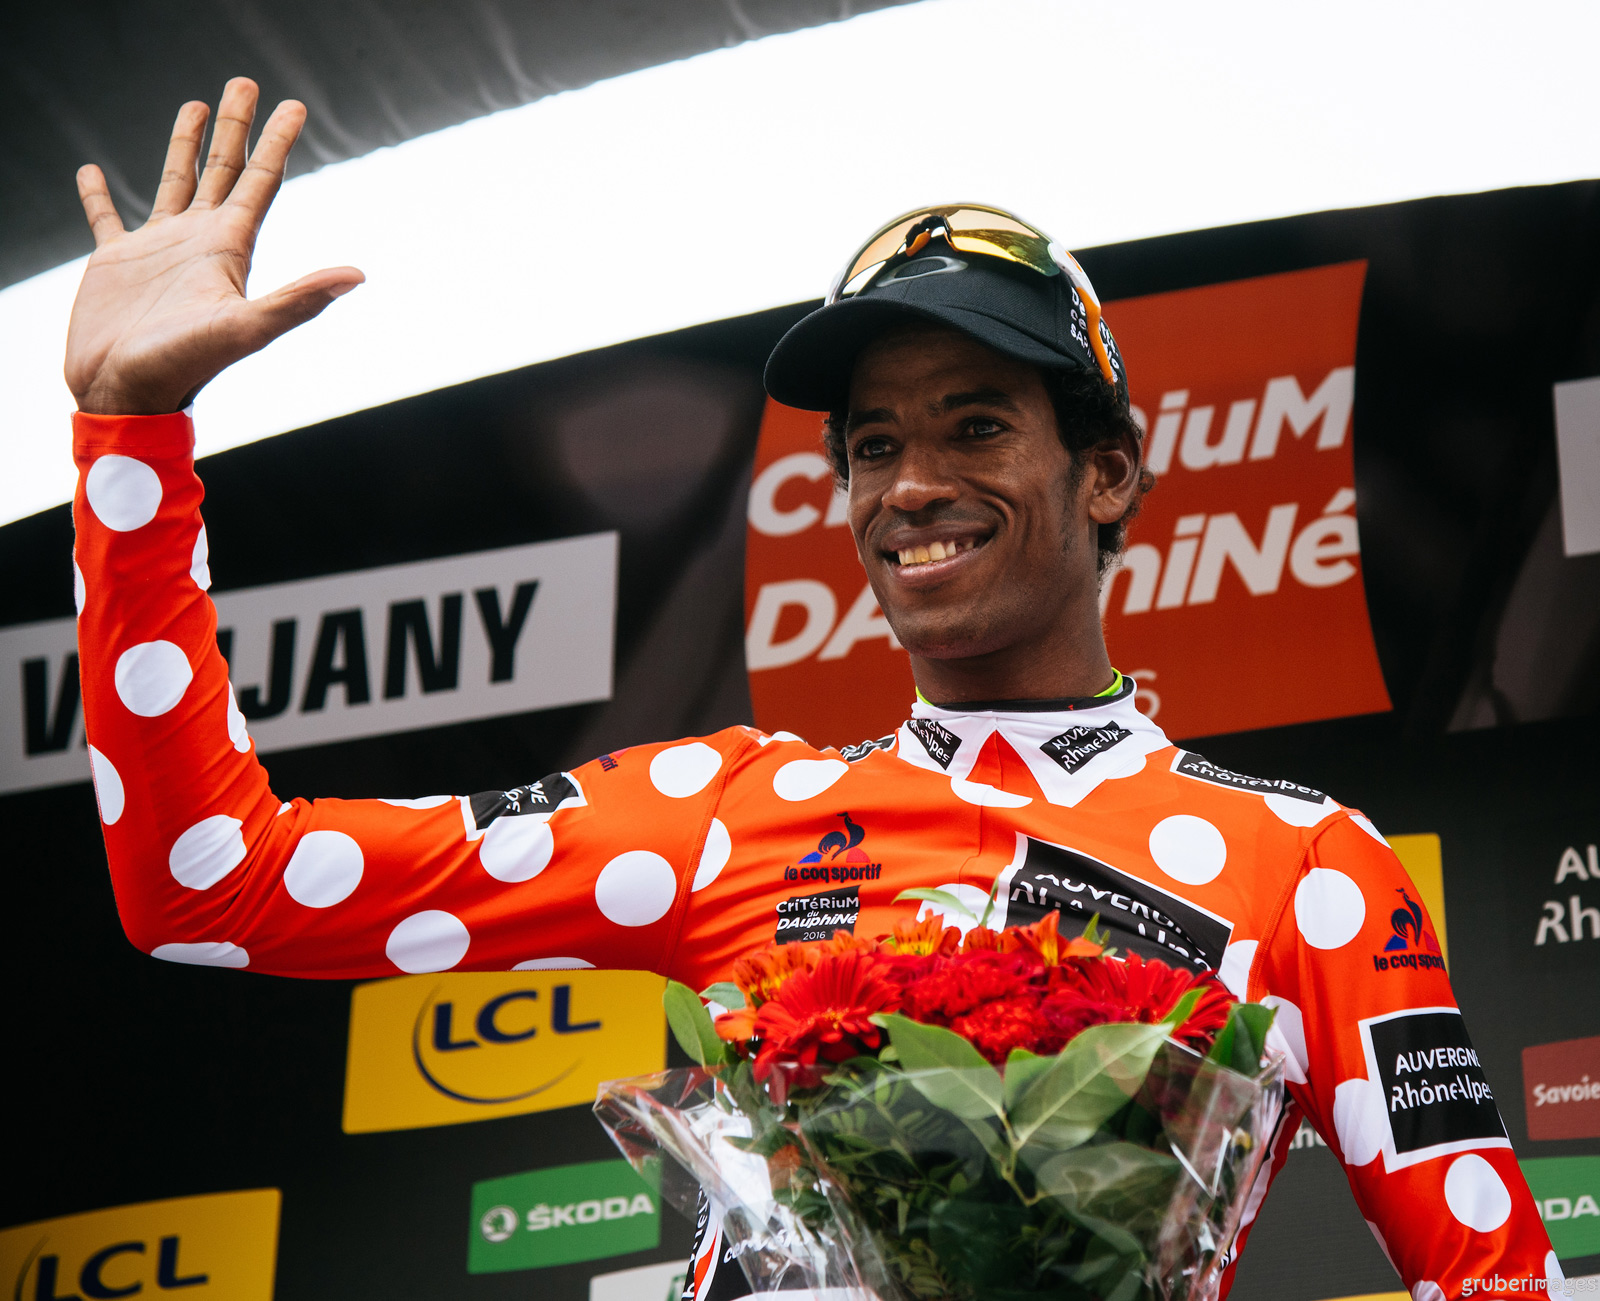 Daniel Teklehaimanot won the King of Mountains classification for two consecutive year at the Criterium du Dauphine